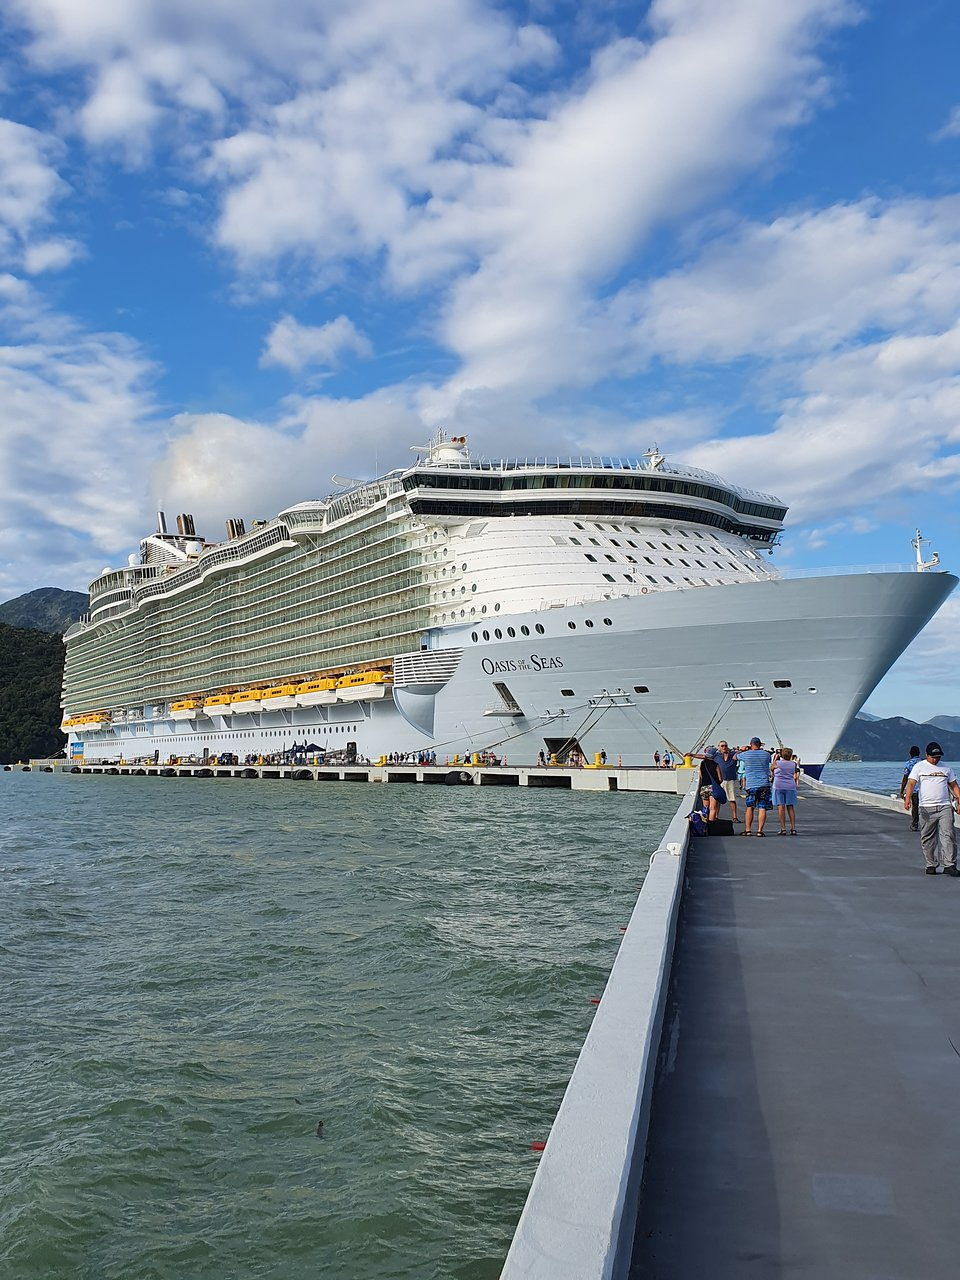 Royal Caribbean Oasis of the Seas - Deck Plans, Reviews & Pictures ...